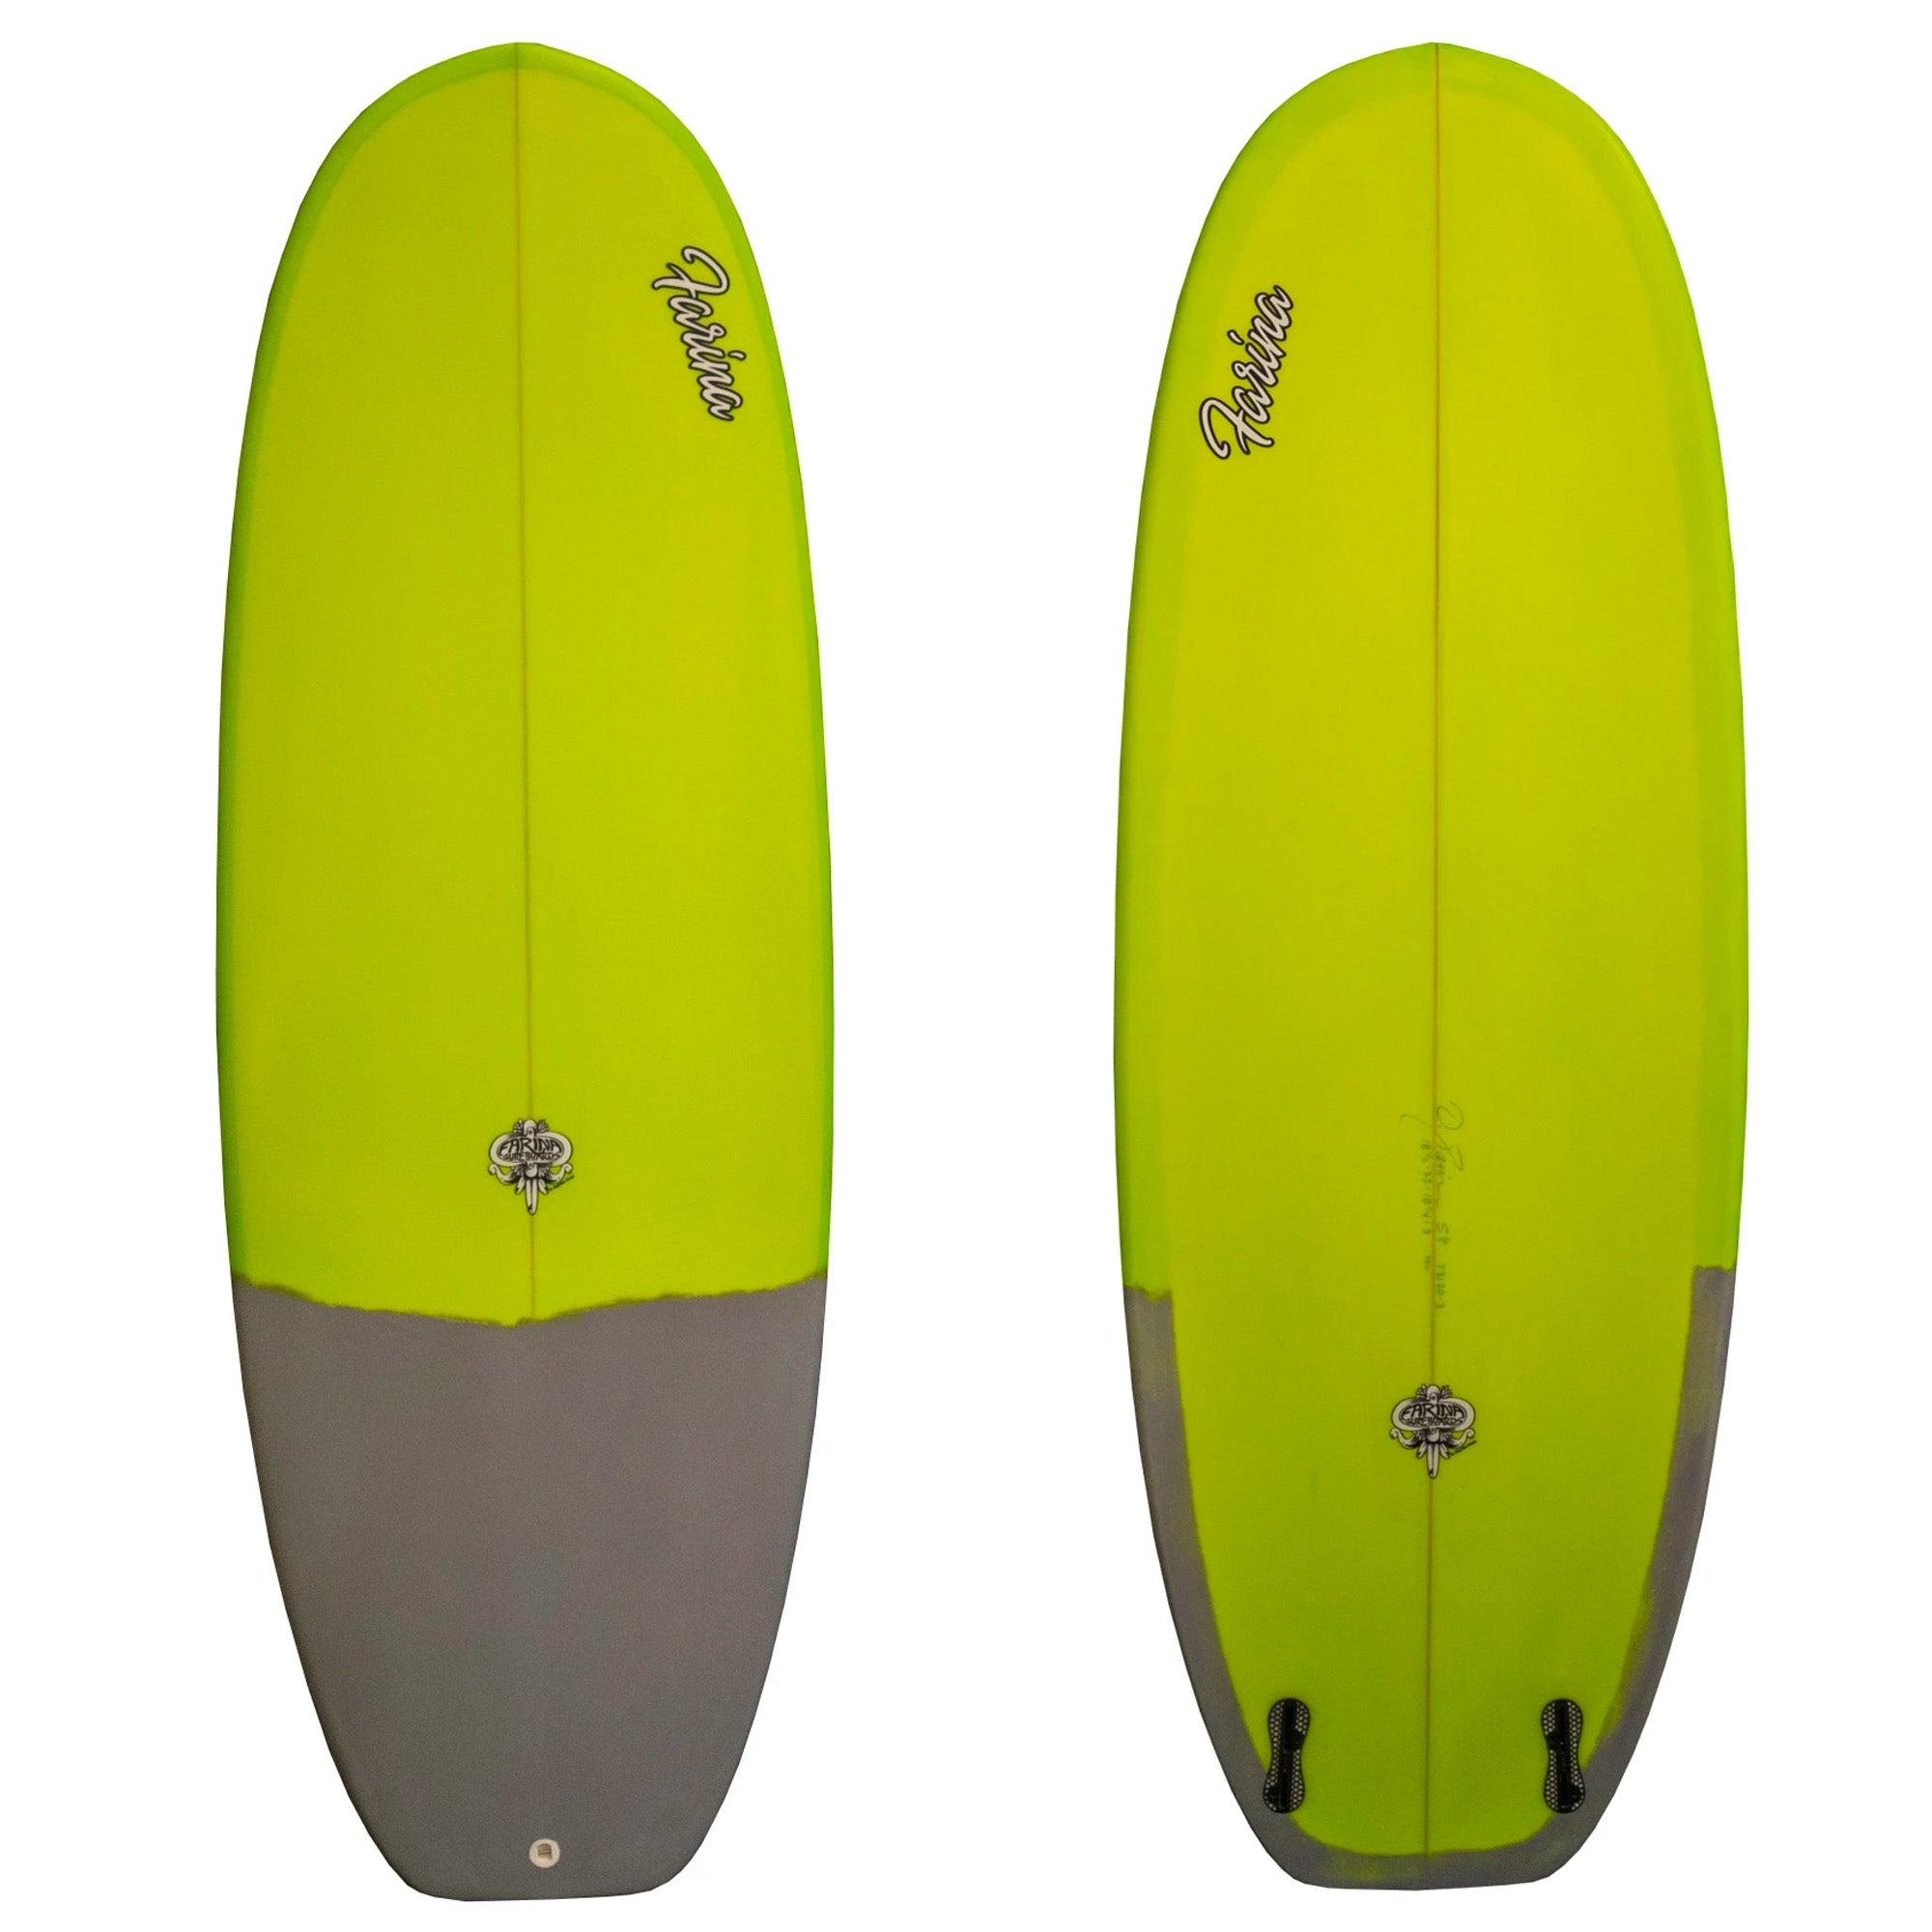 Farina Handcrafted 5'6 Mini Simmons Surfboard